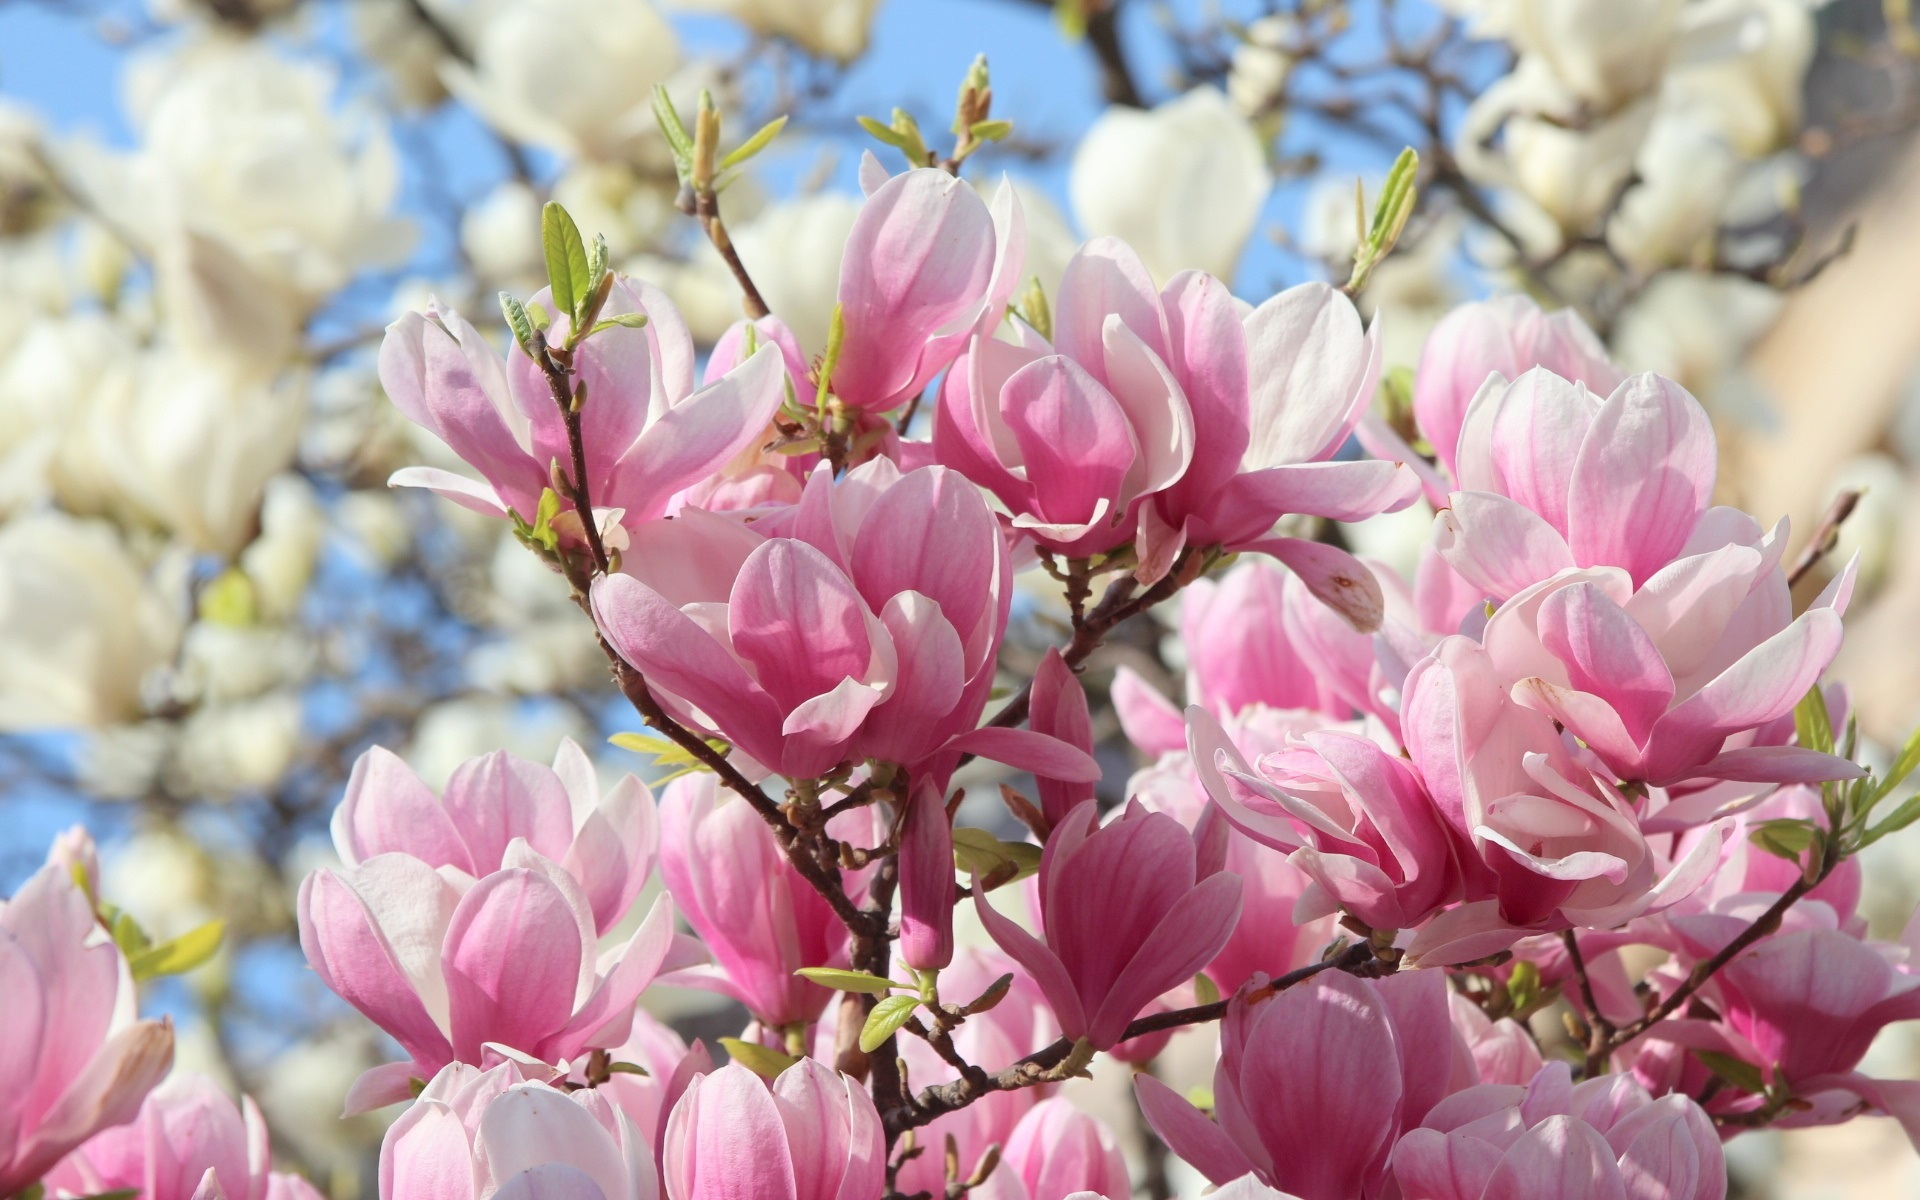 Wallpaper pink magnolia flowers bloom beautiful 1920x1200 hd picture image - Magnolia background ...